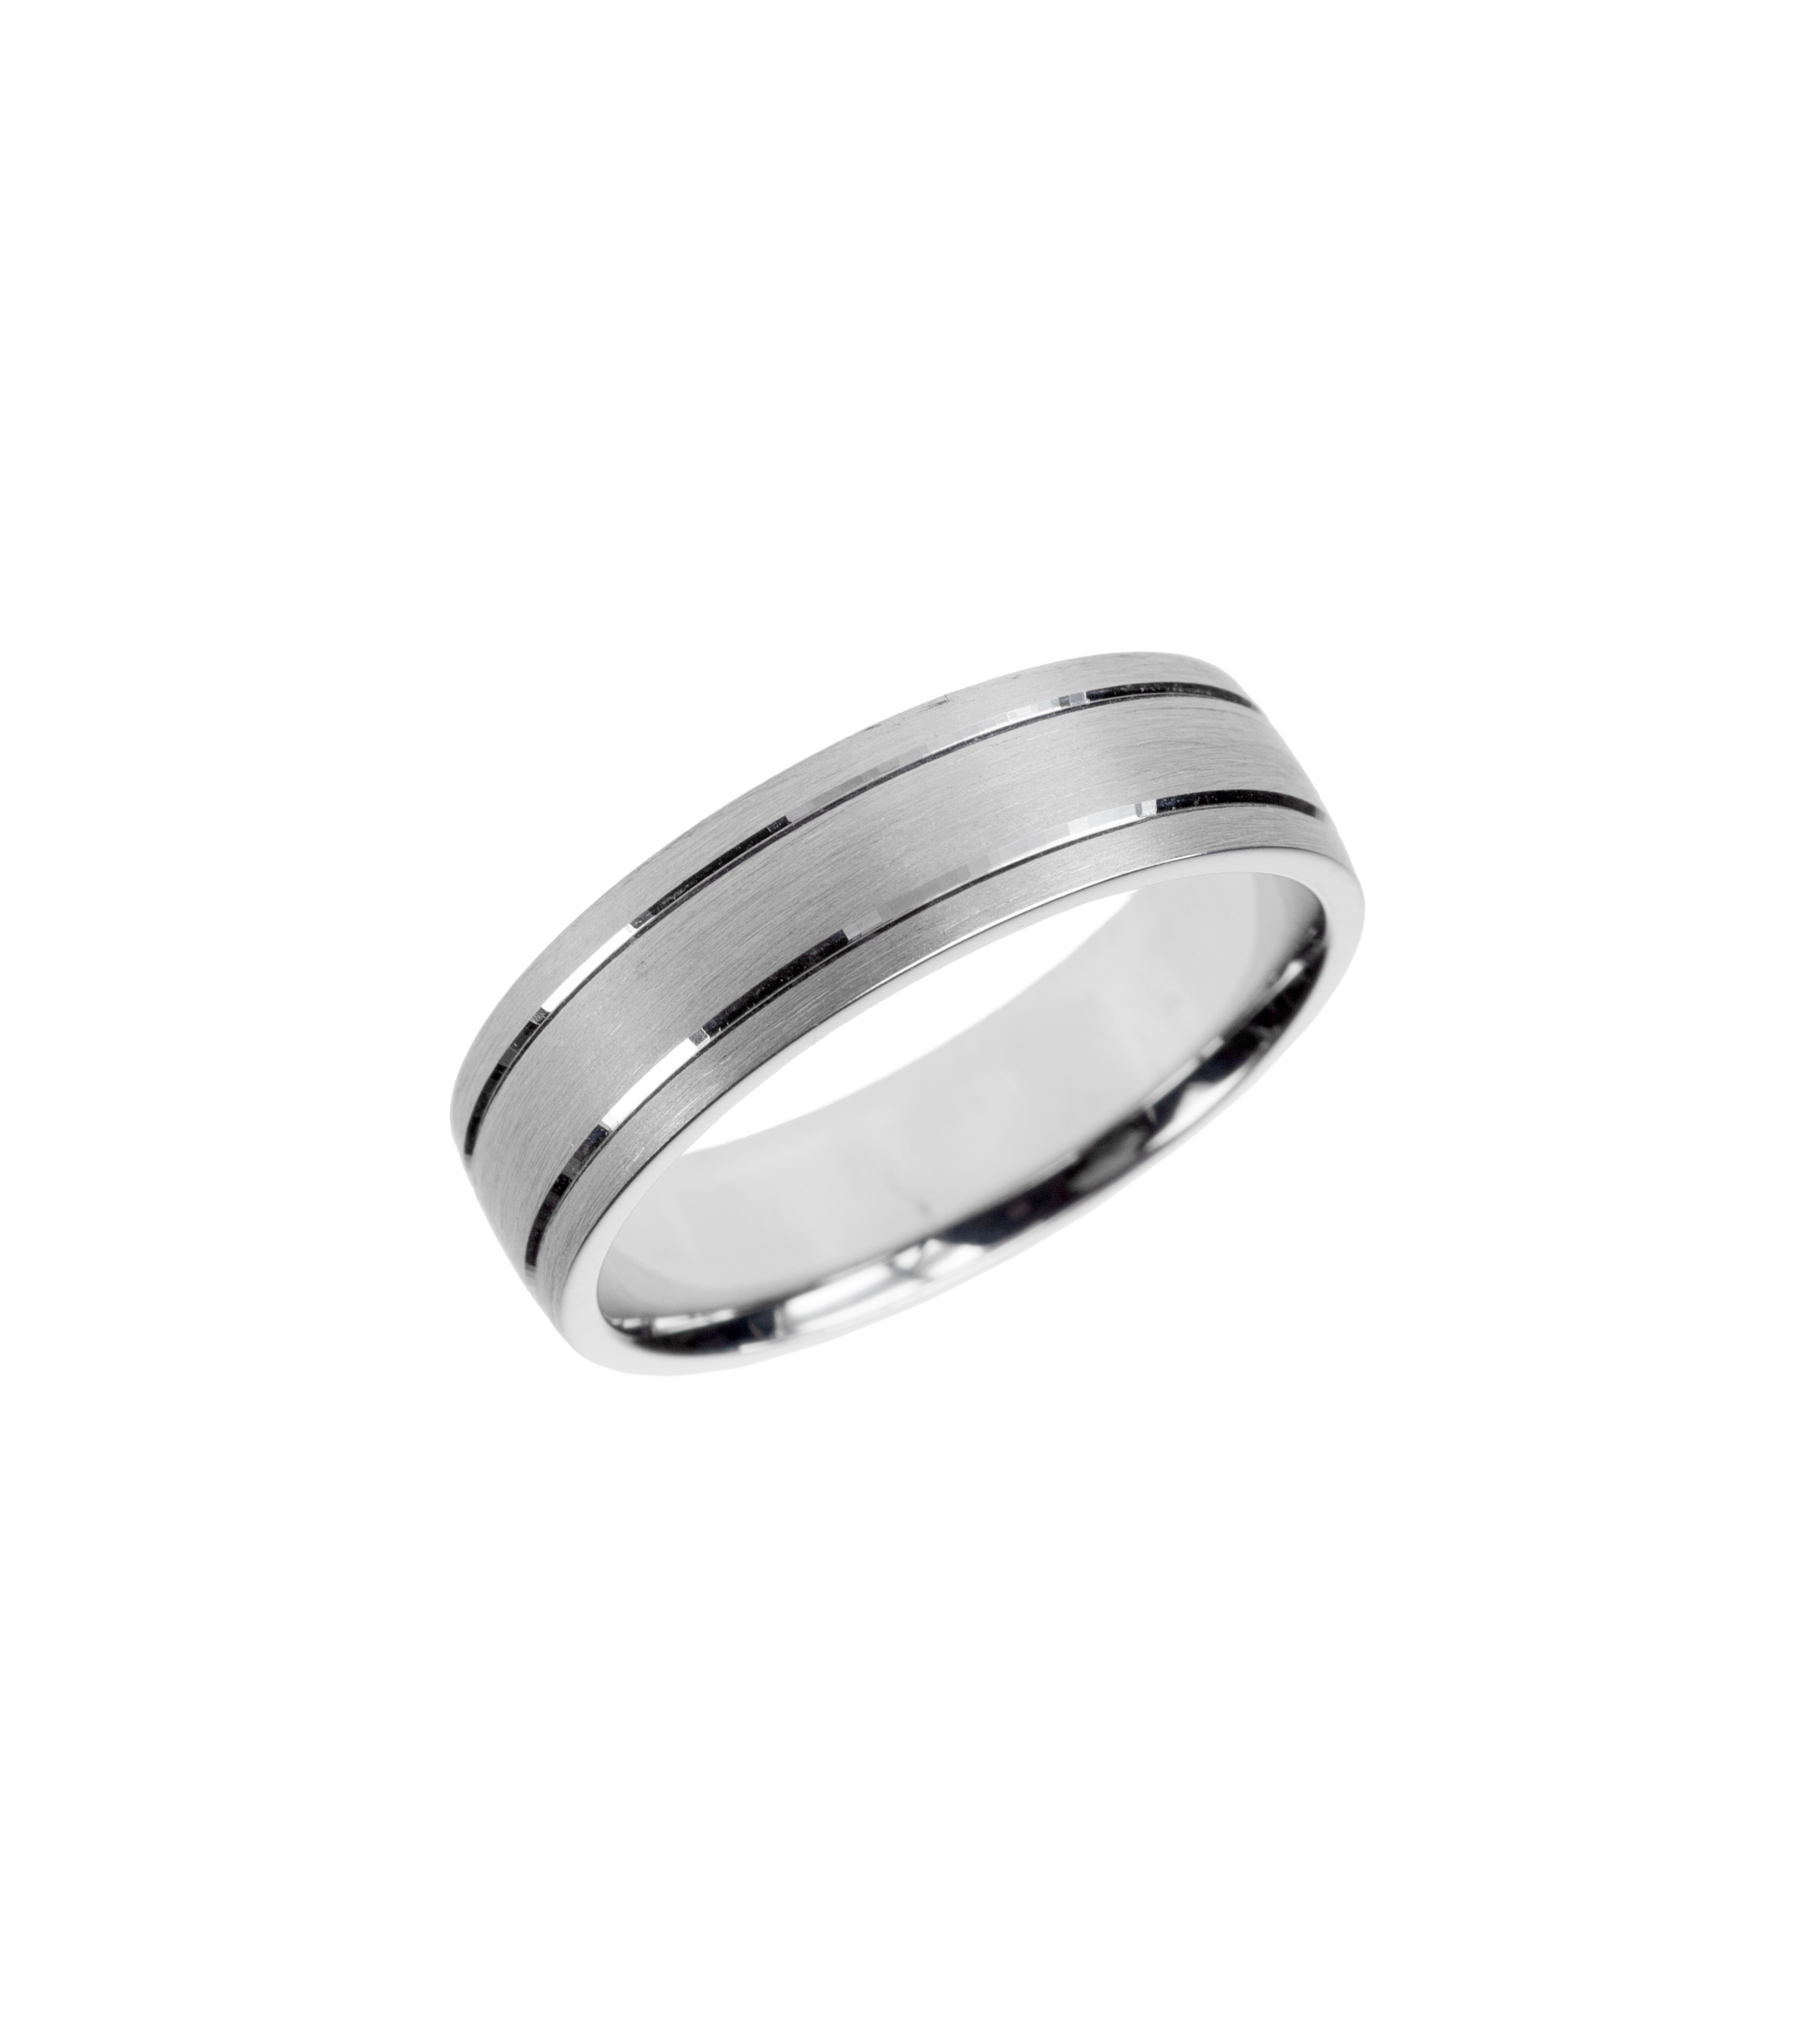 Satin-finished gent's wedding band